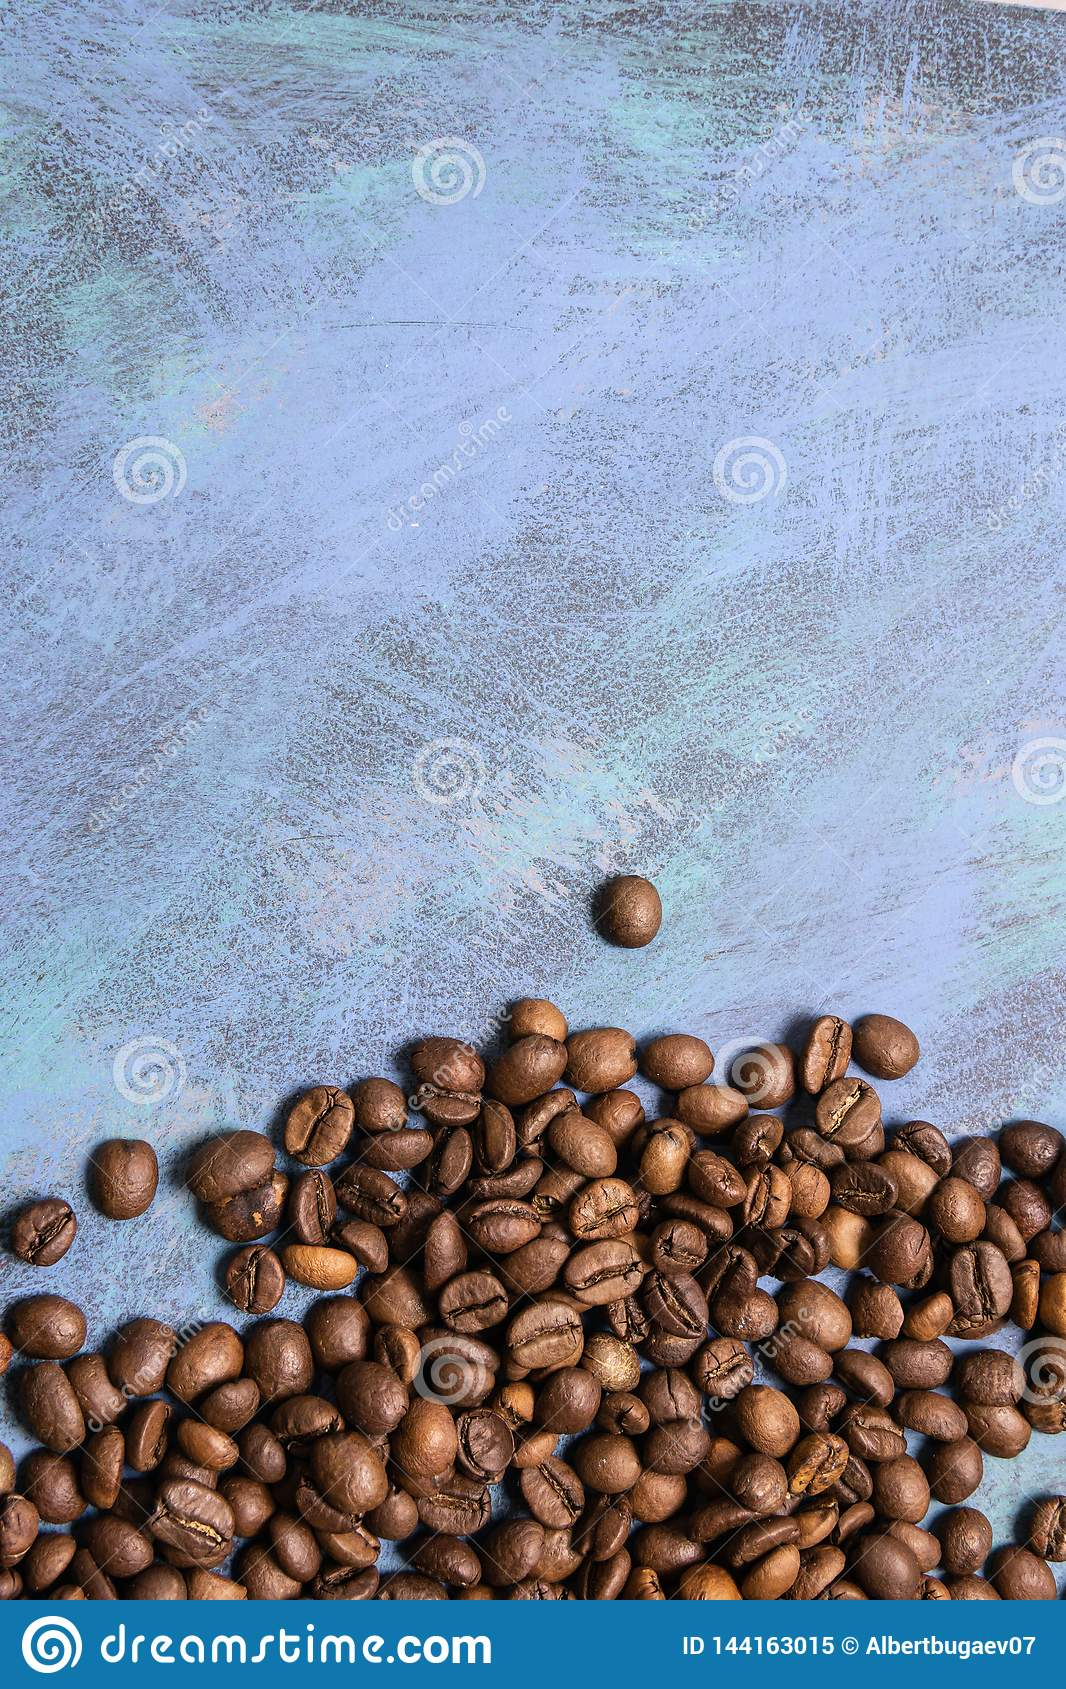 Roasted coffee beans in bulk on a blue background. dark cofee roasted grain flavor aroma cafe, natural coffe shop background, top